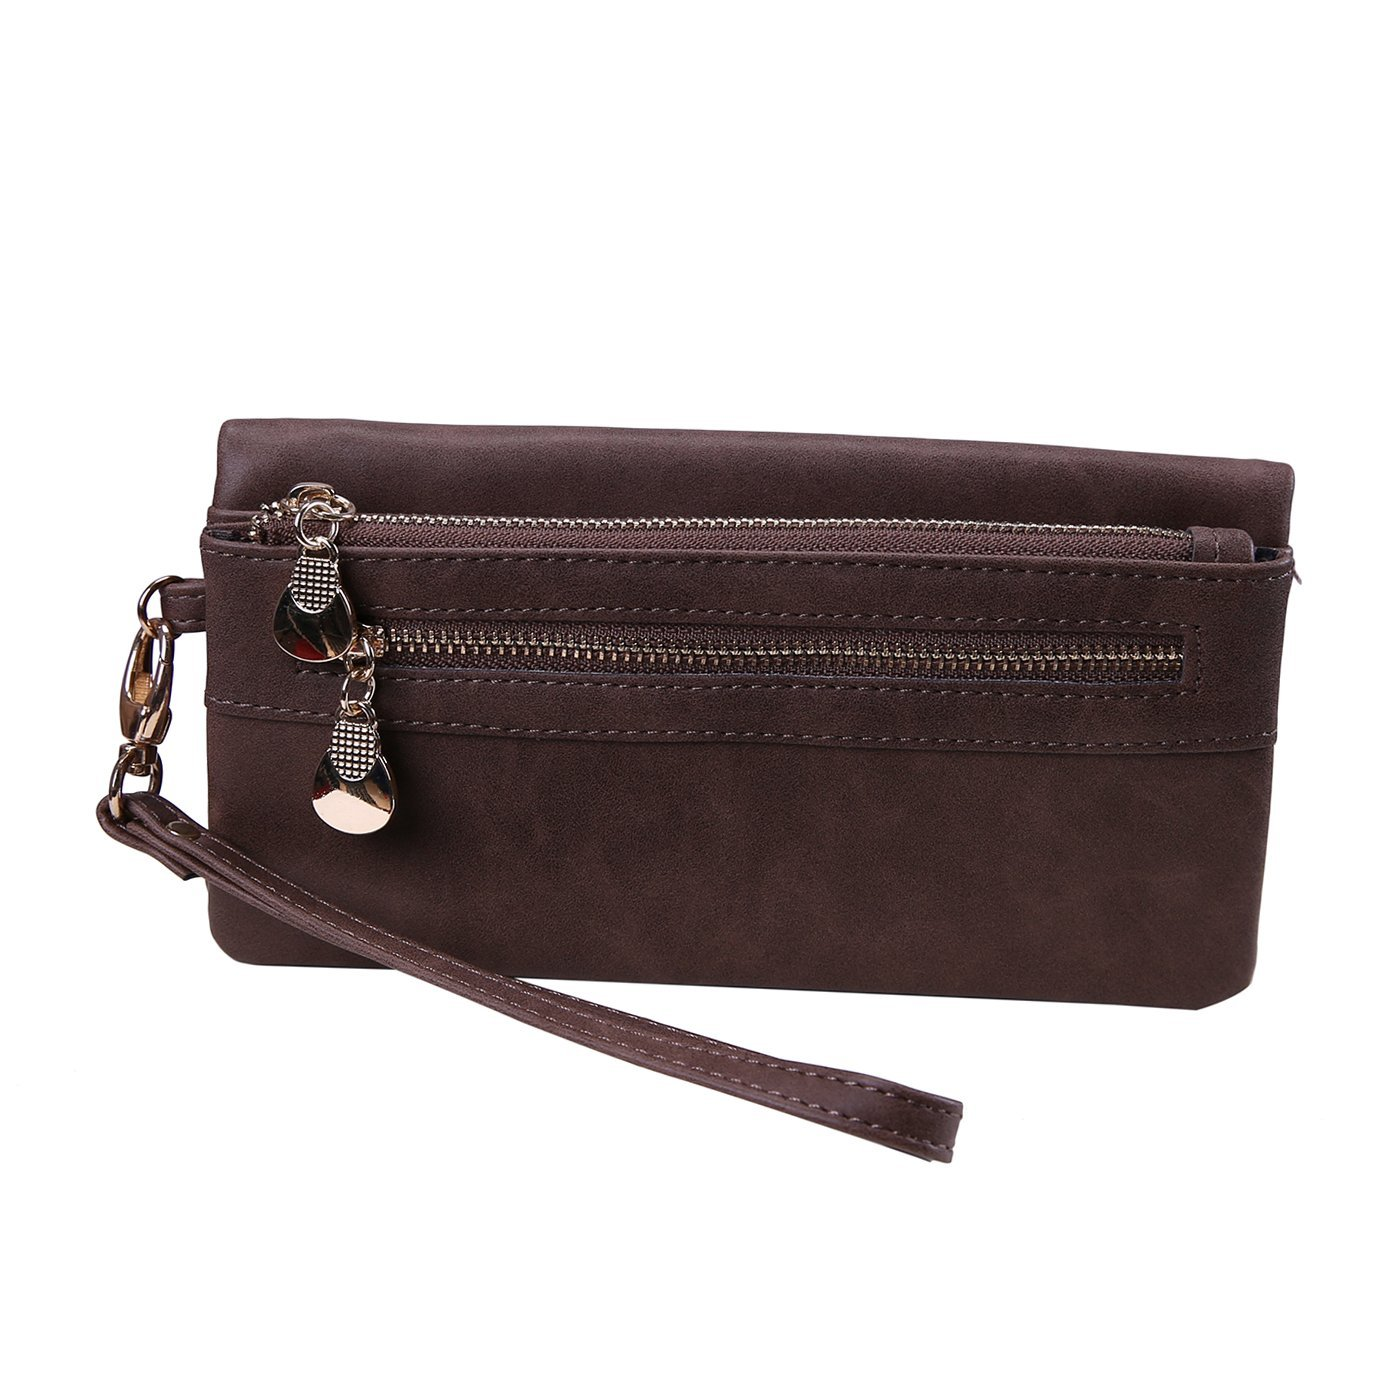 HDE Women's Leather Wallet Clutch Multi-Function Zippered Wristlet Purse